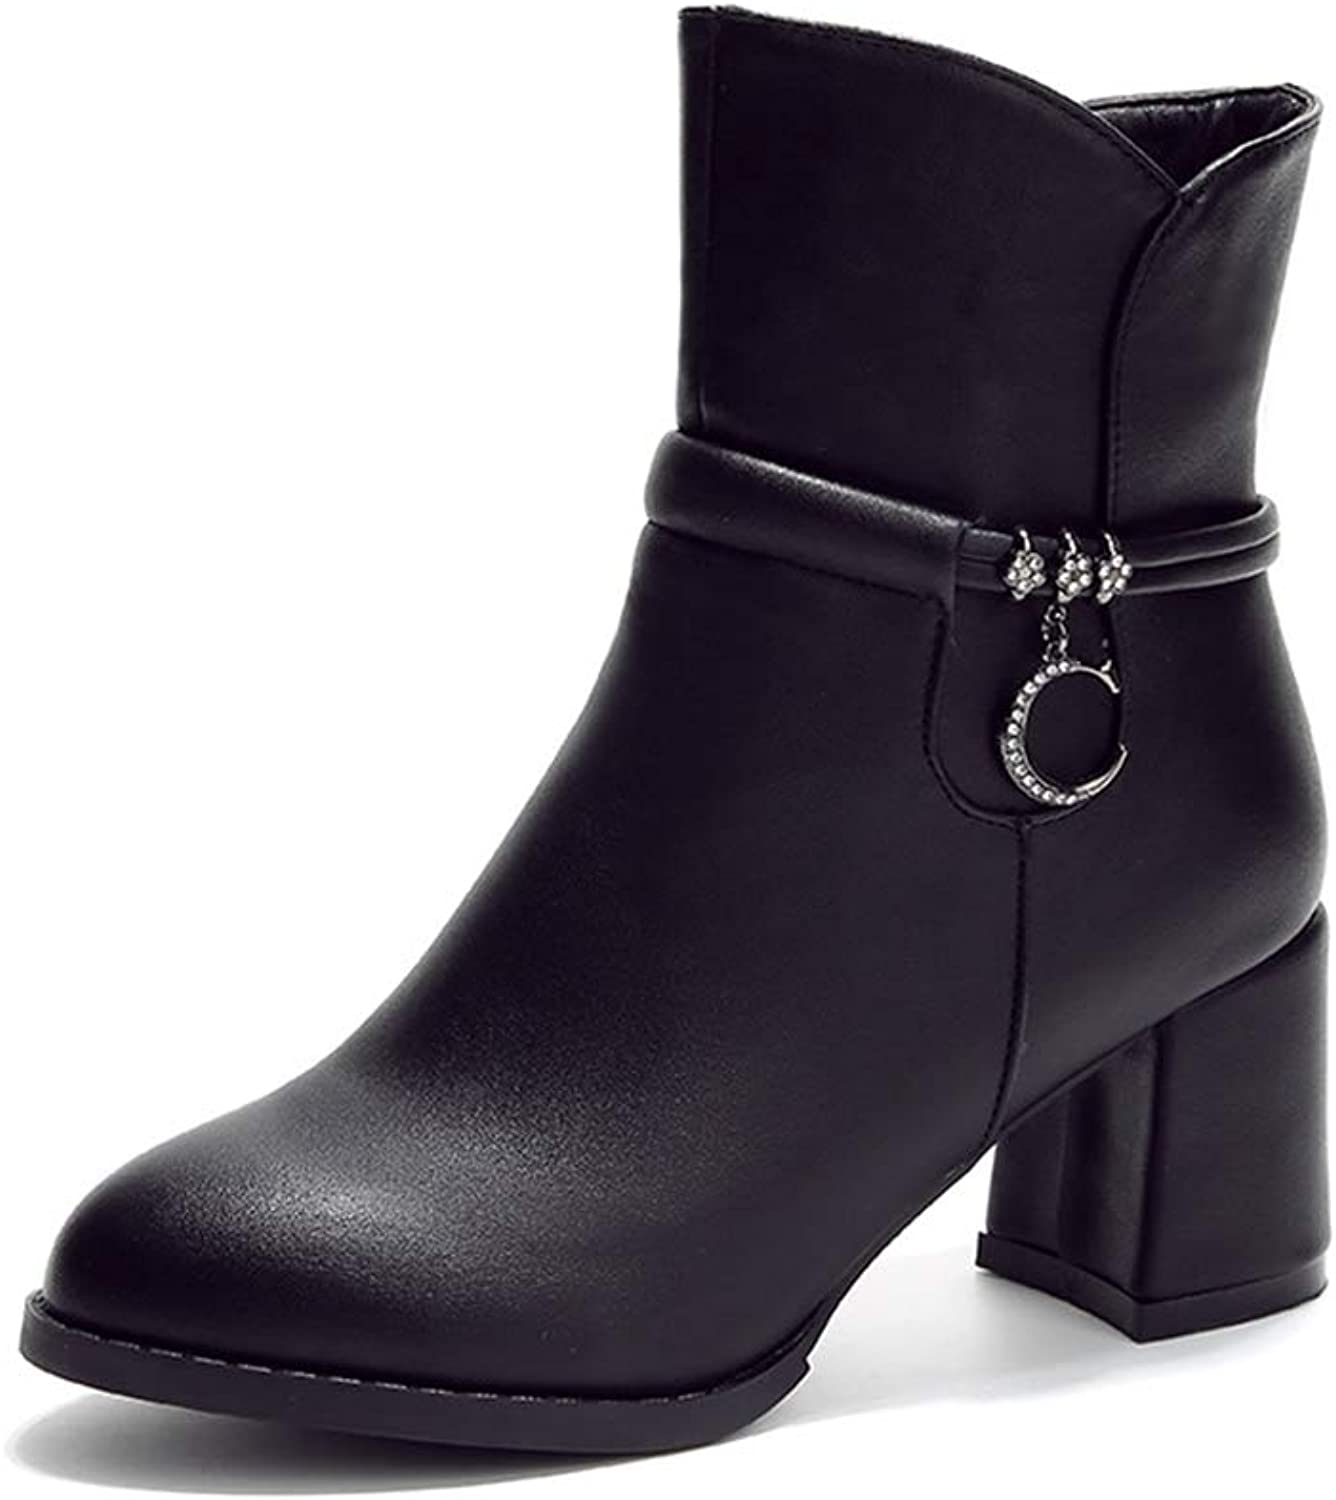 Lady's Ankle Boots, Autumn Winter Rough High Heels Comfortable Martin Boots Winter Warm Non-Slip Women's Boots (color   Black, Size   38)